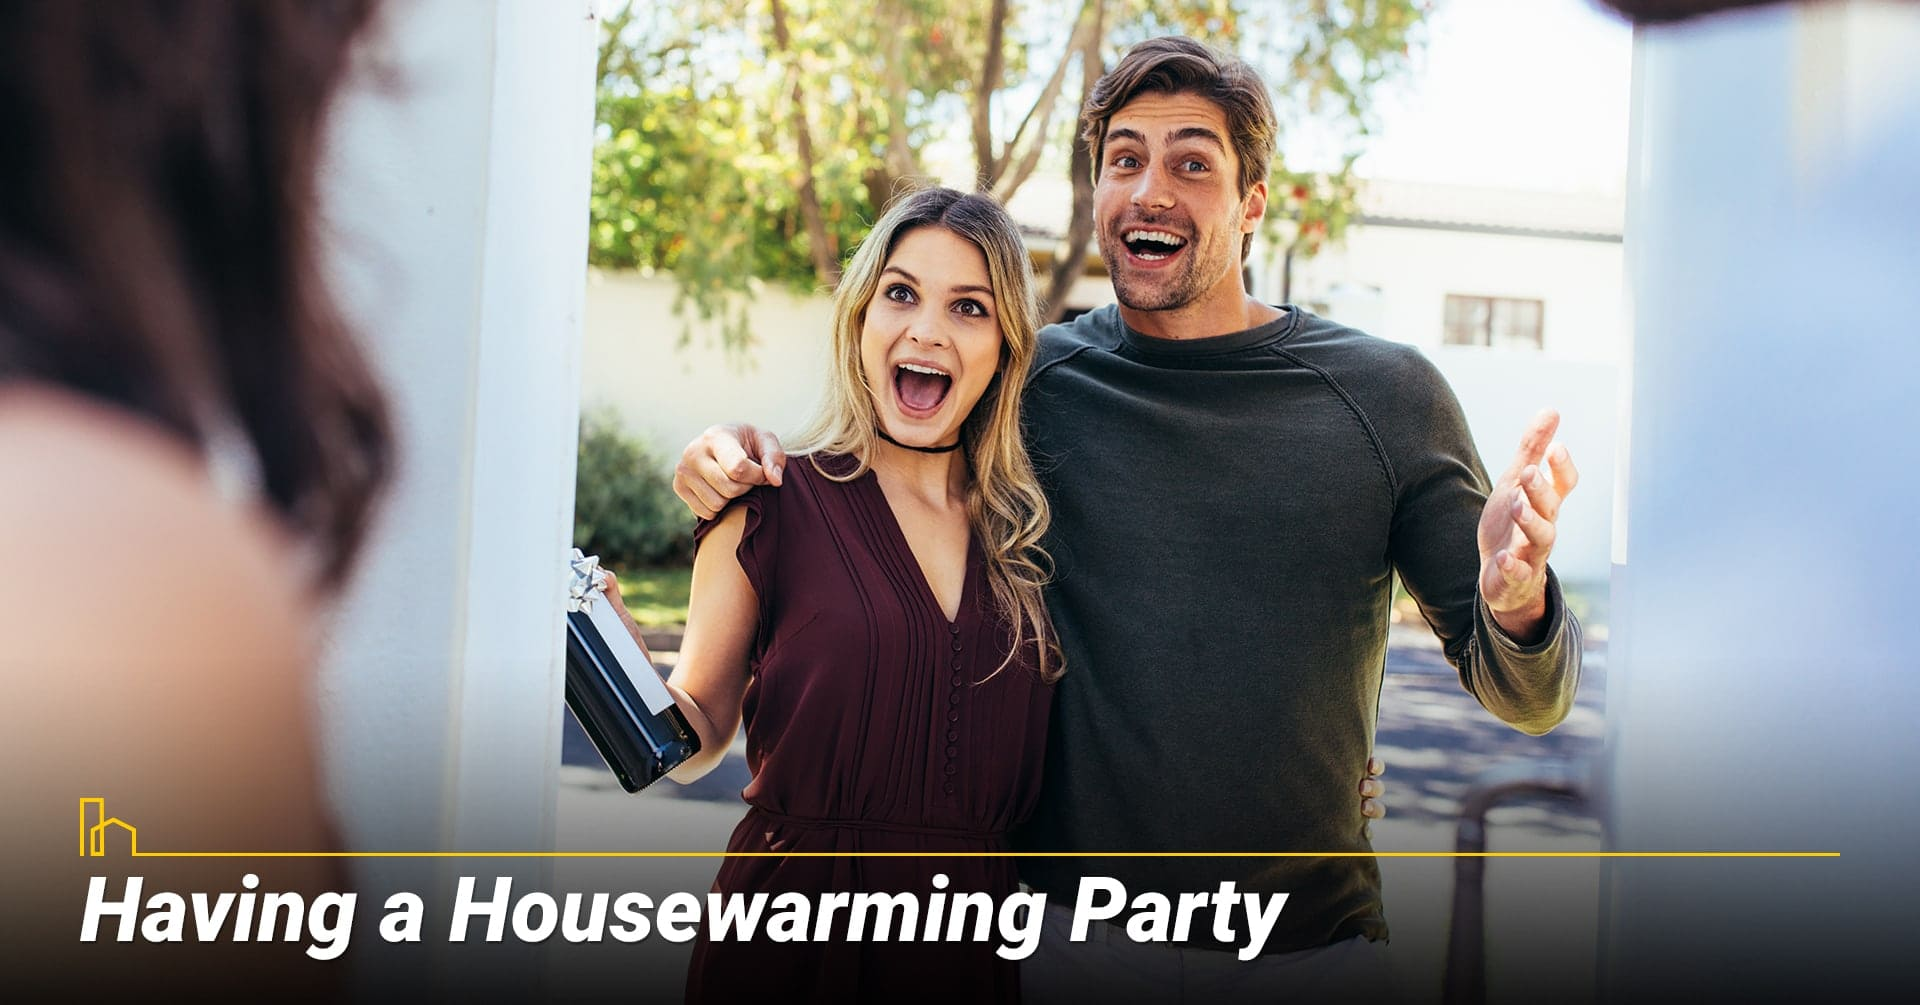 Having a Housewarming Party, invite people to your new home